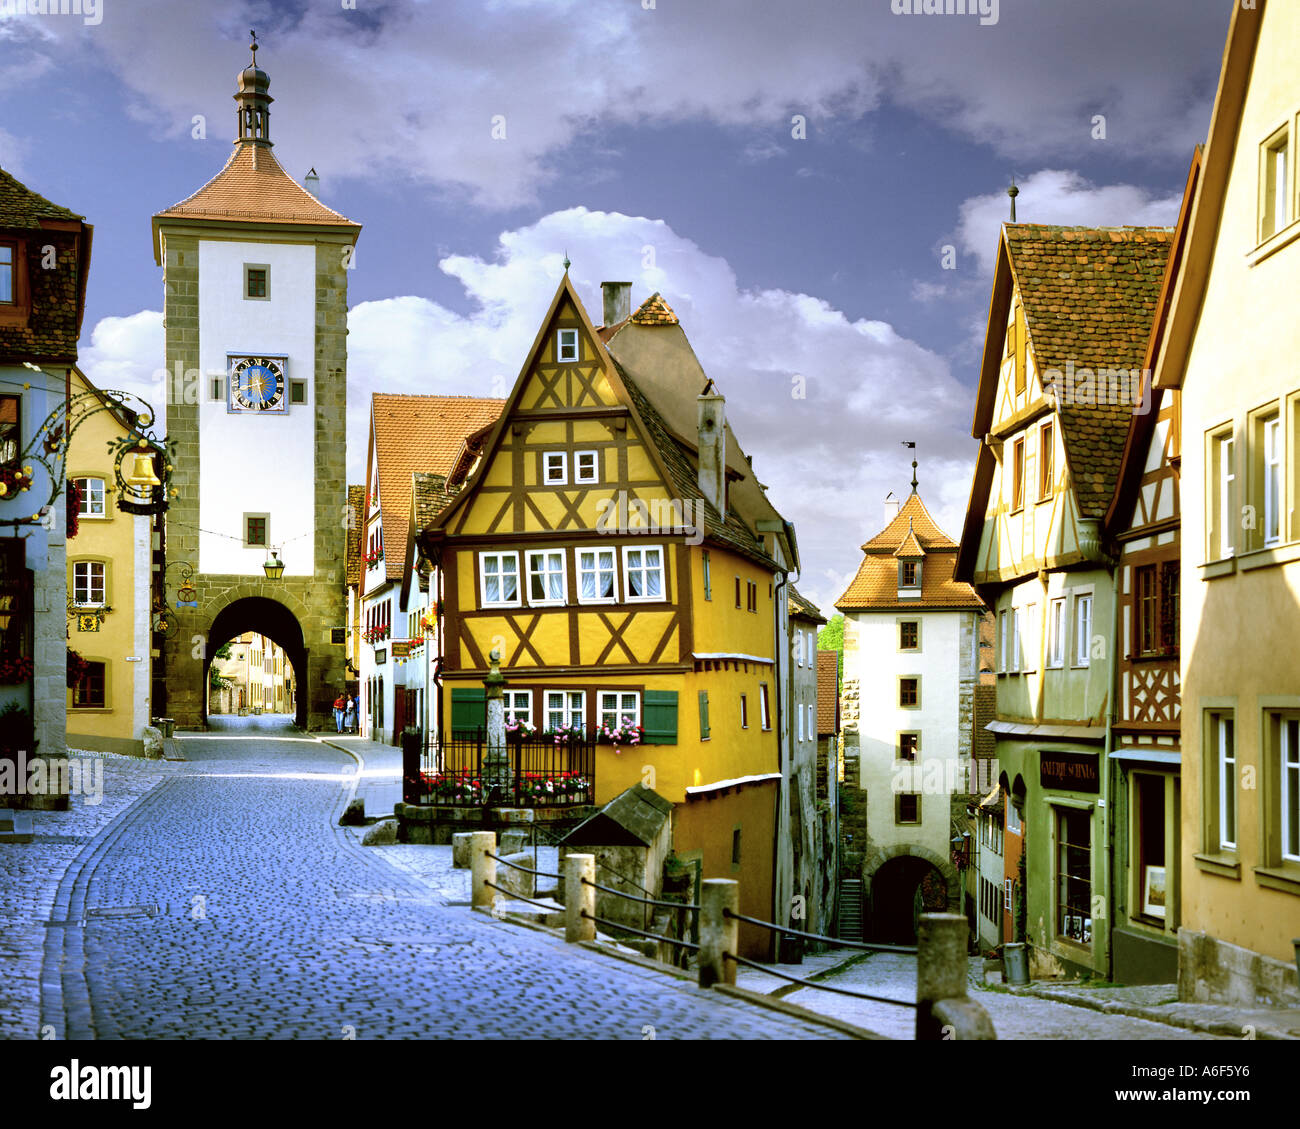 DE - La Bavière : Plönlein à Rothenburg-ob-der-Tauber Photo Stock